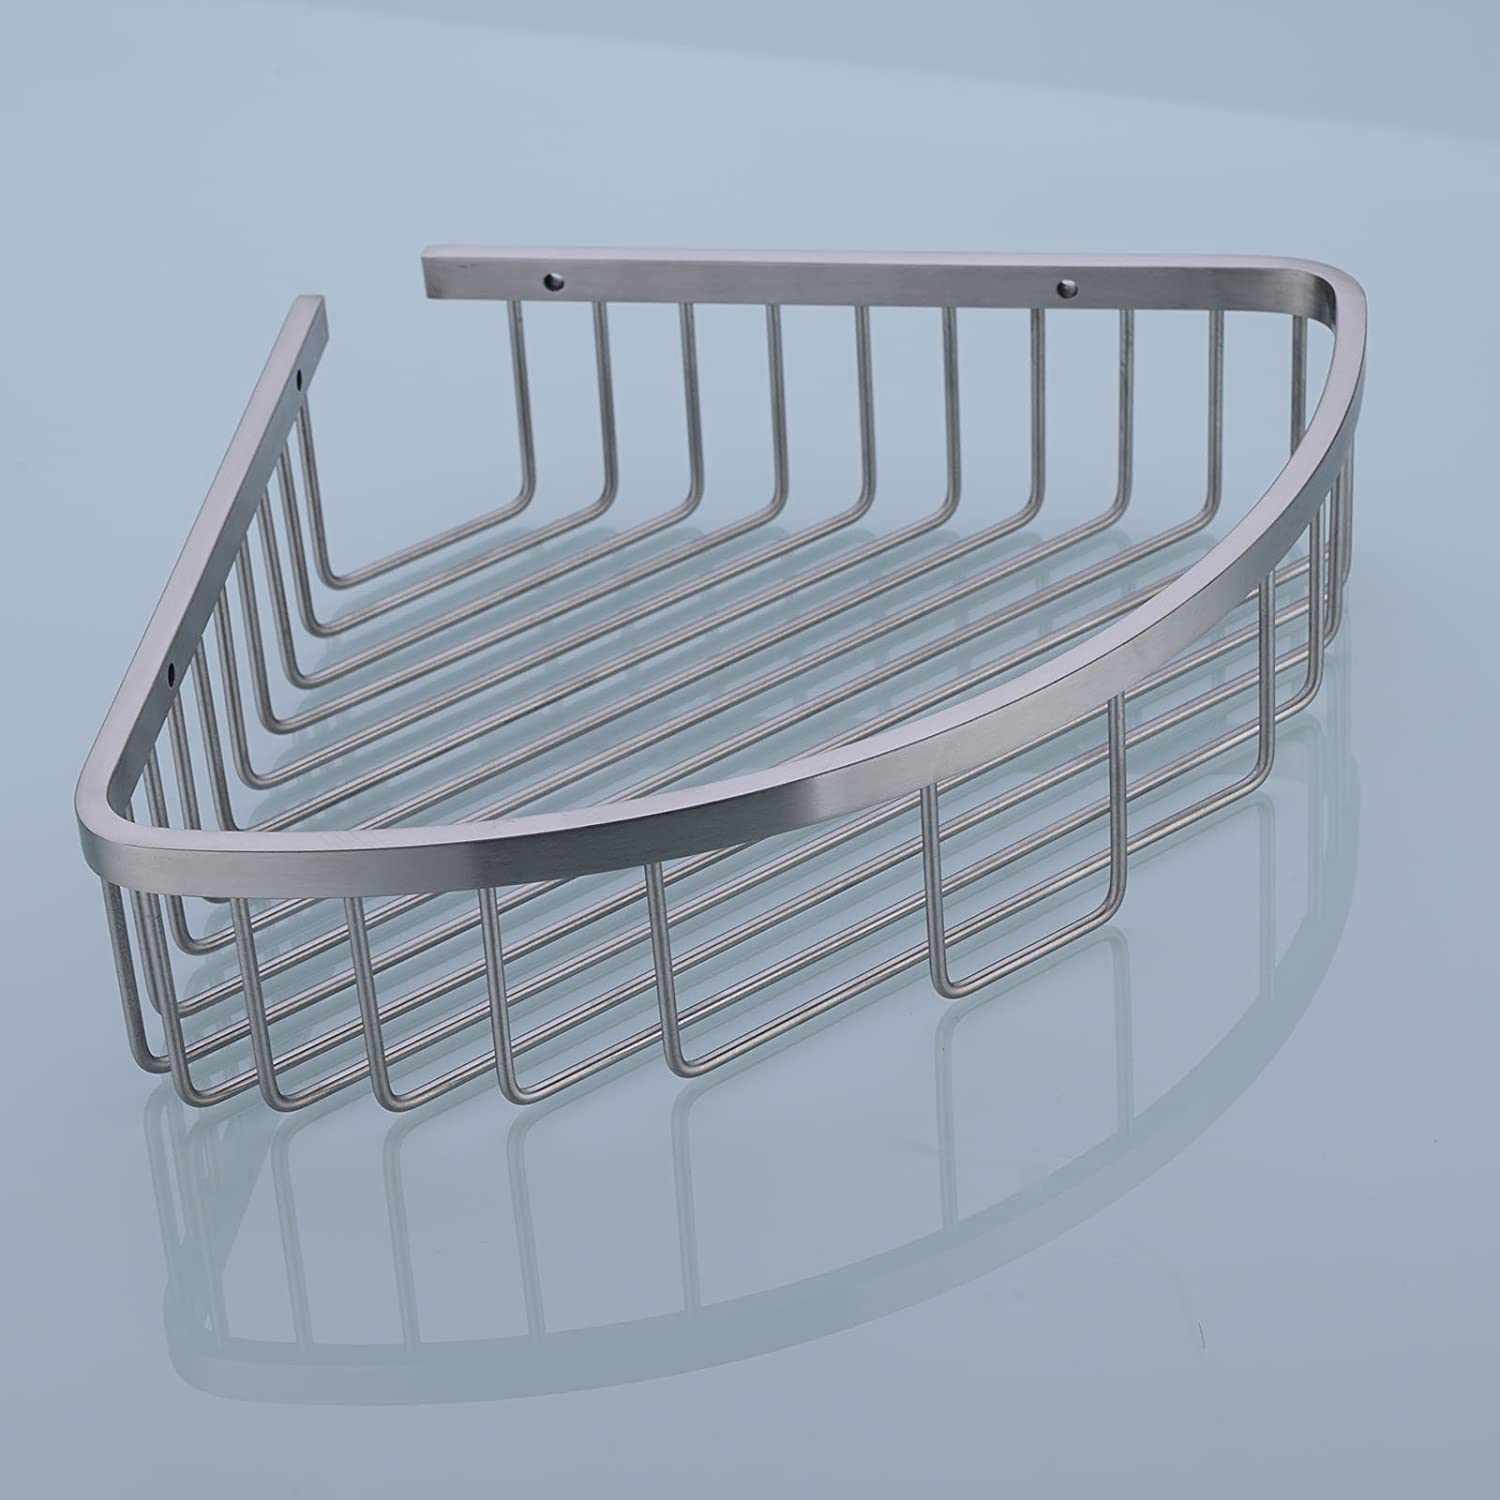 Amazon.com: 304 Stainless Steel Shower Caddy Corner Basket Shelf ...